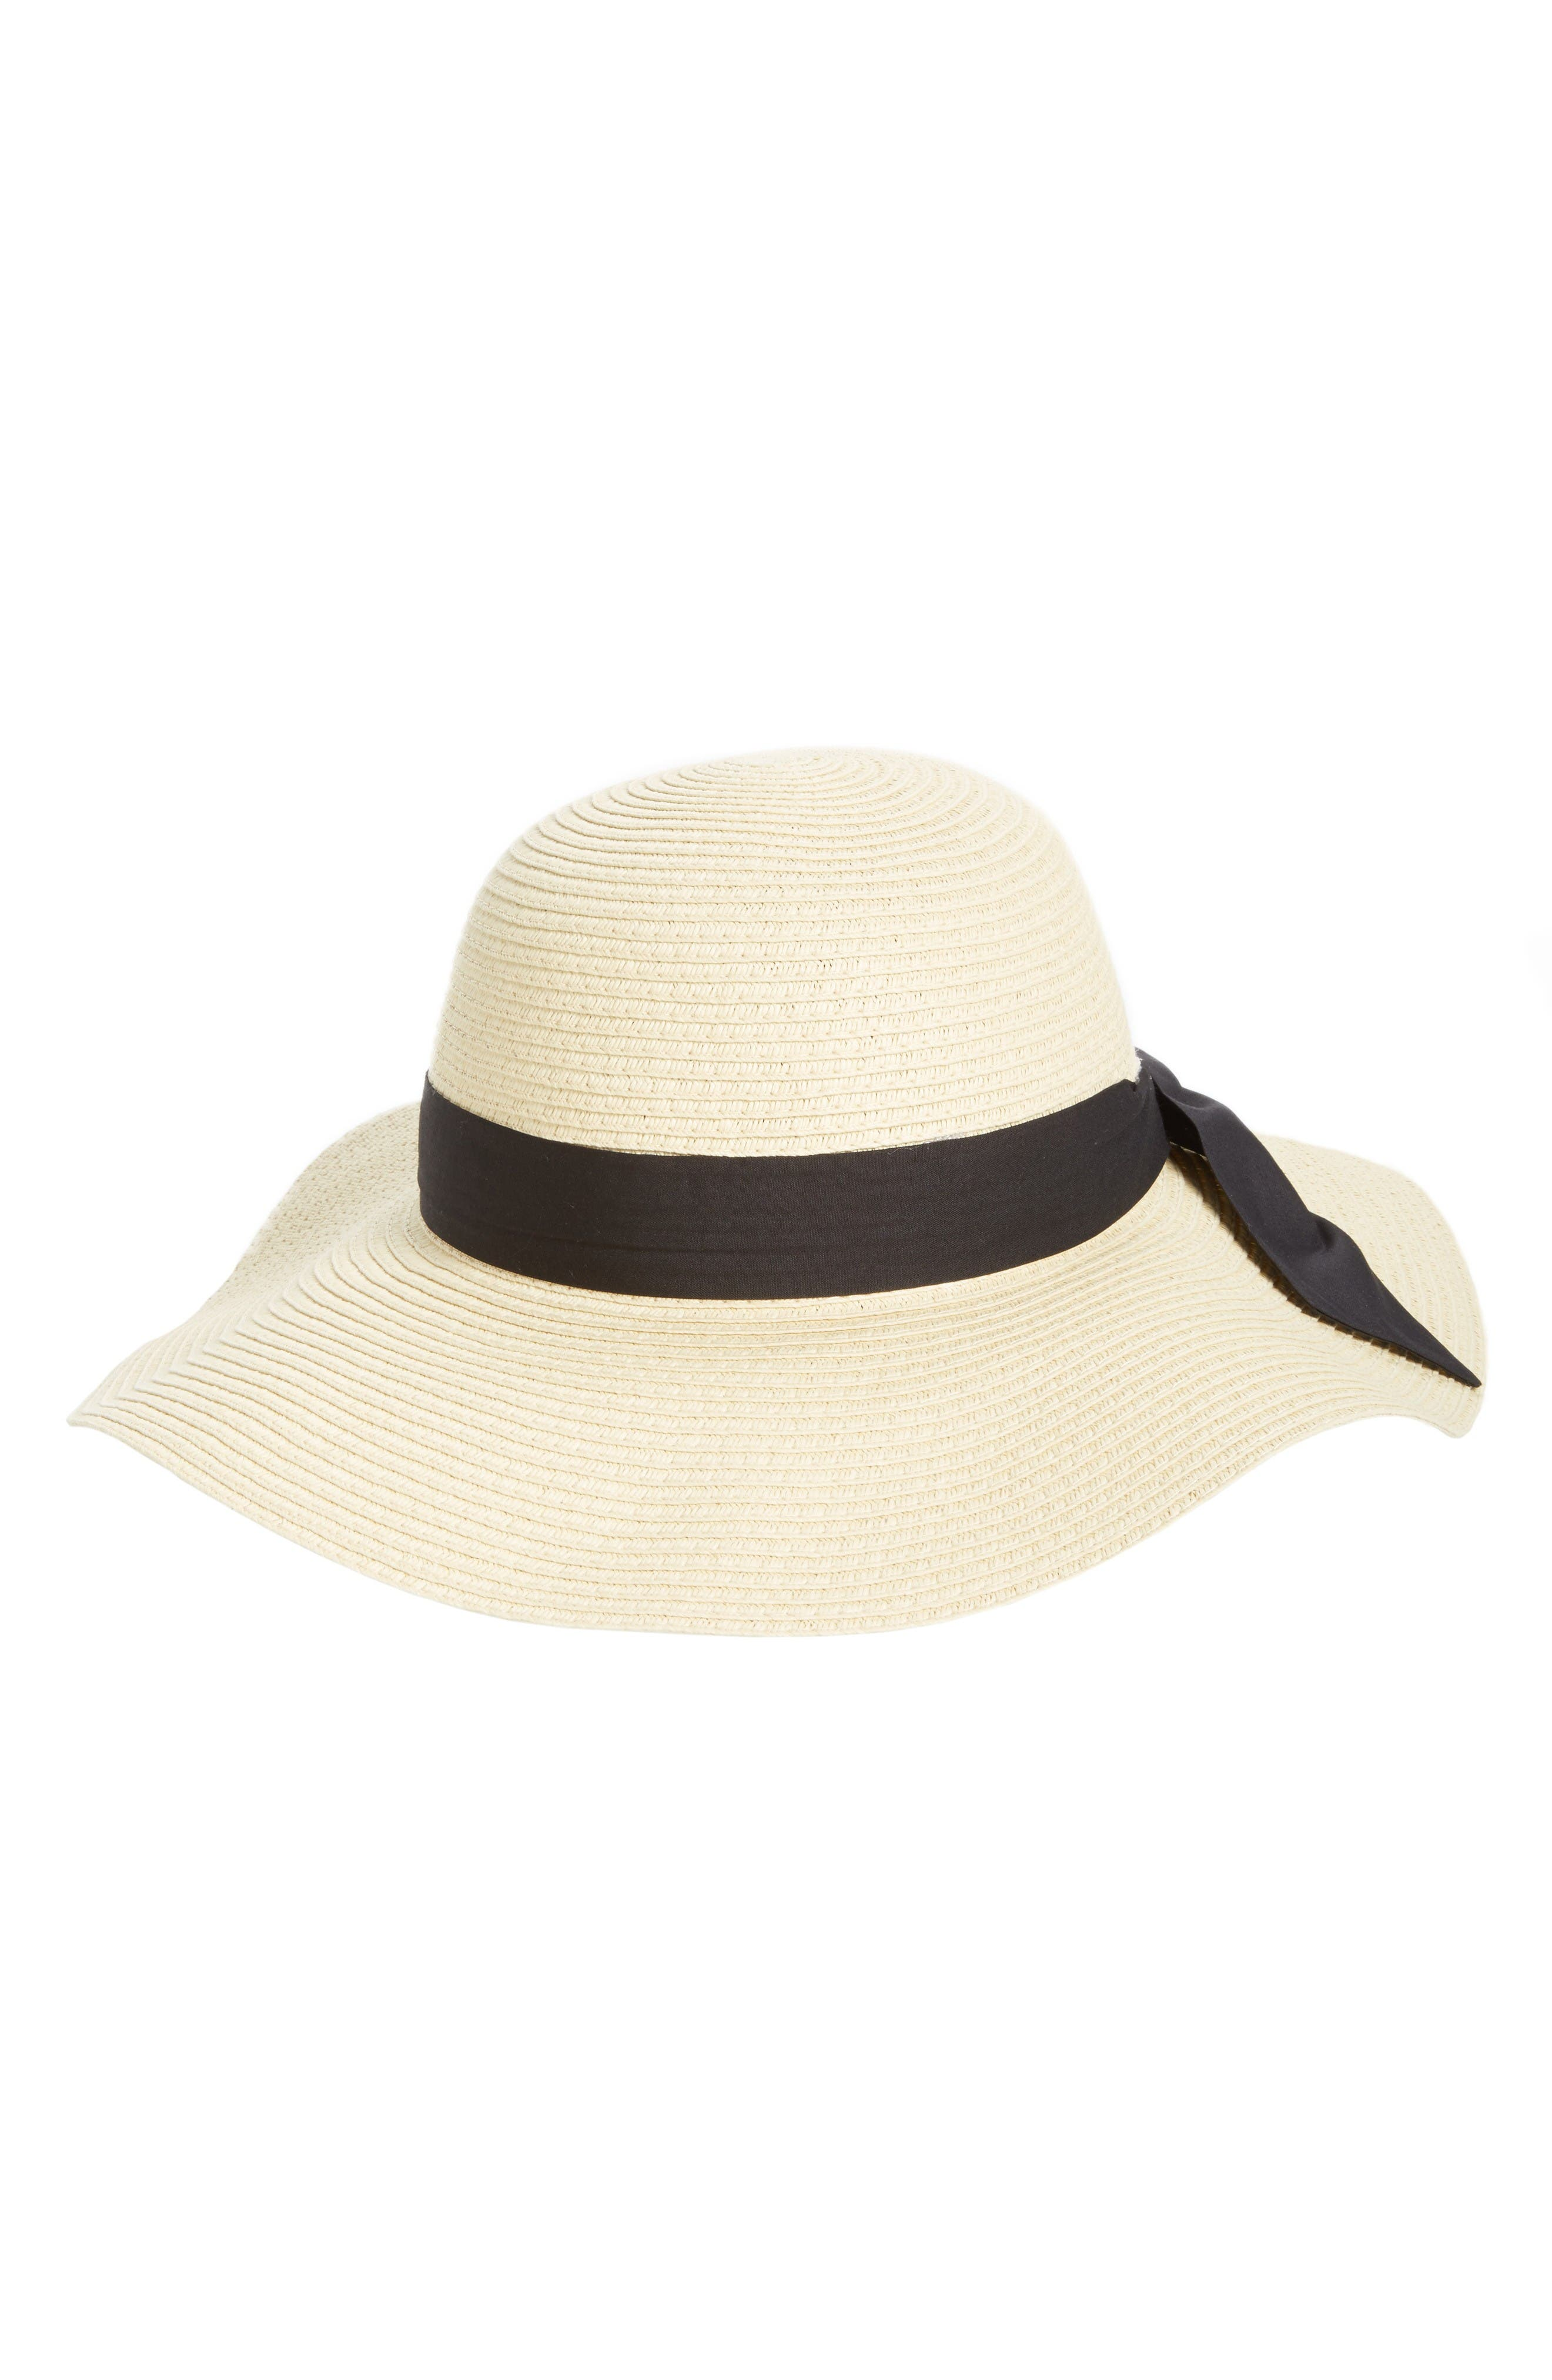 Alternate Image 1 Selected - BP. Bow Band Floppy Straw Hat